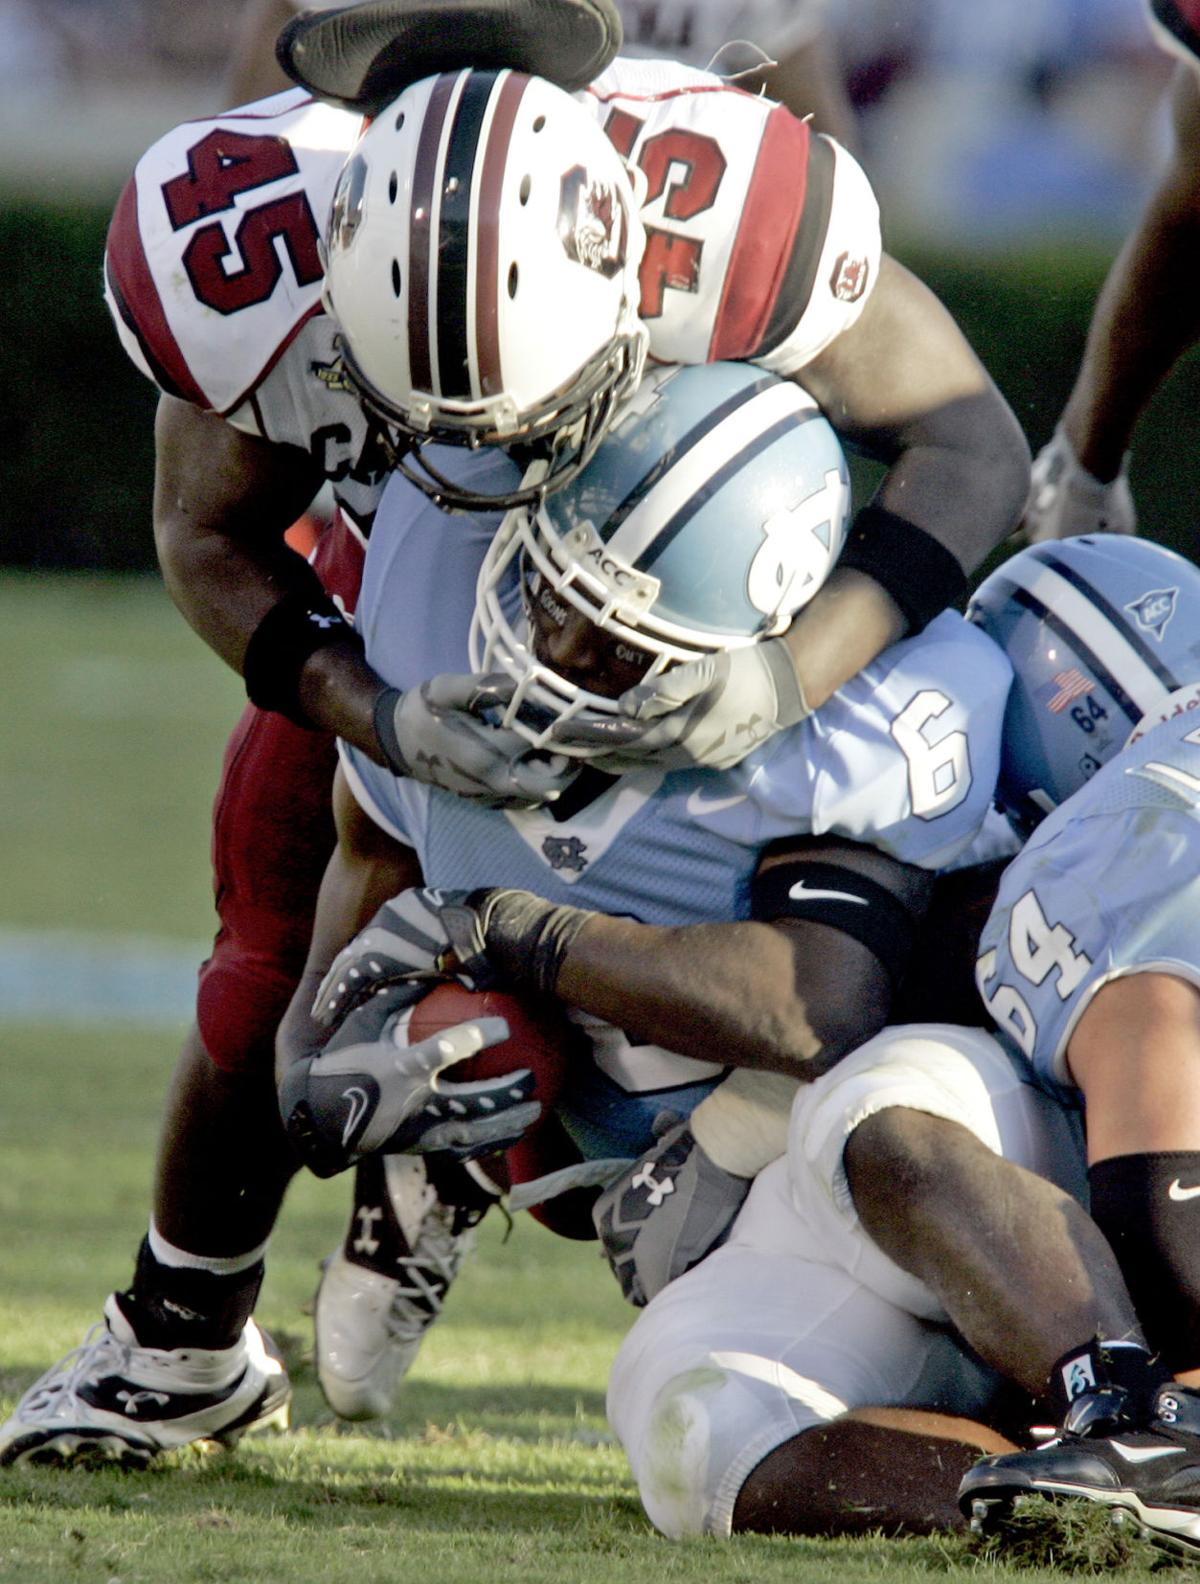 USC to start 2015 against UNC